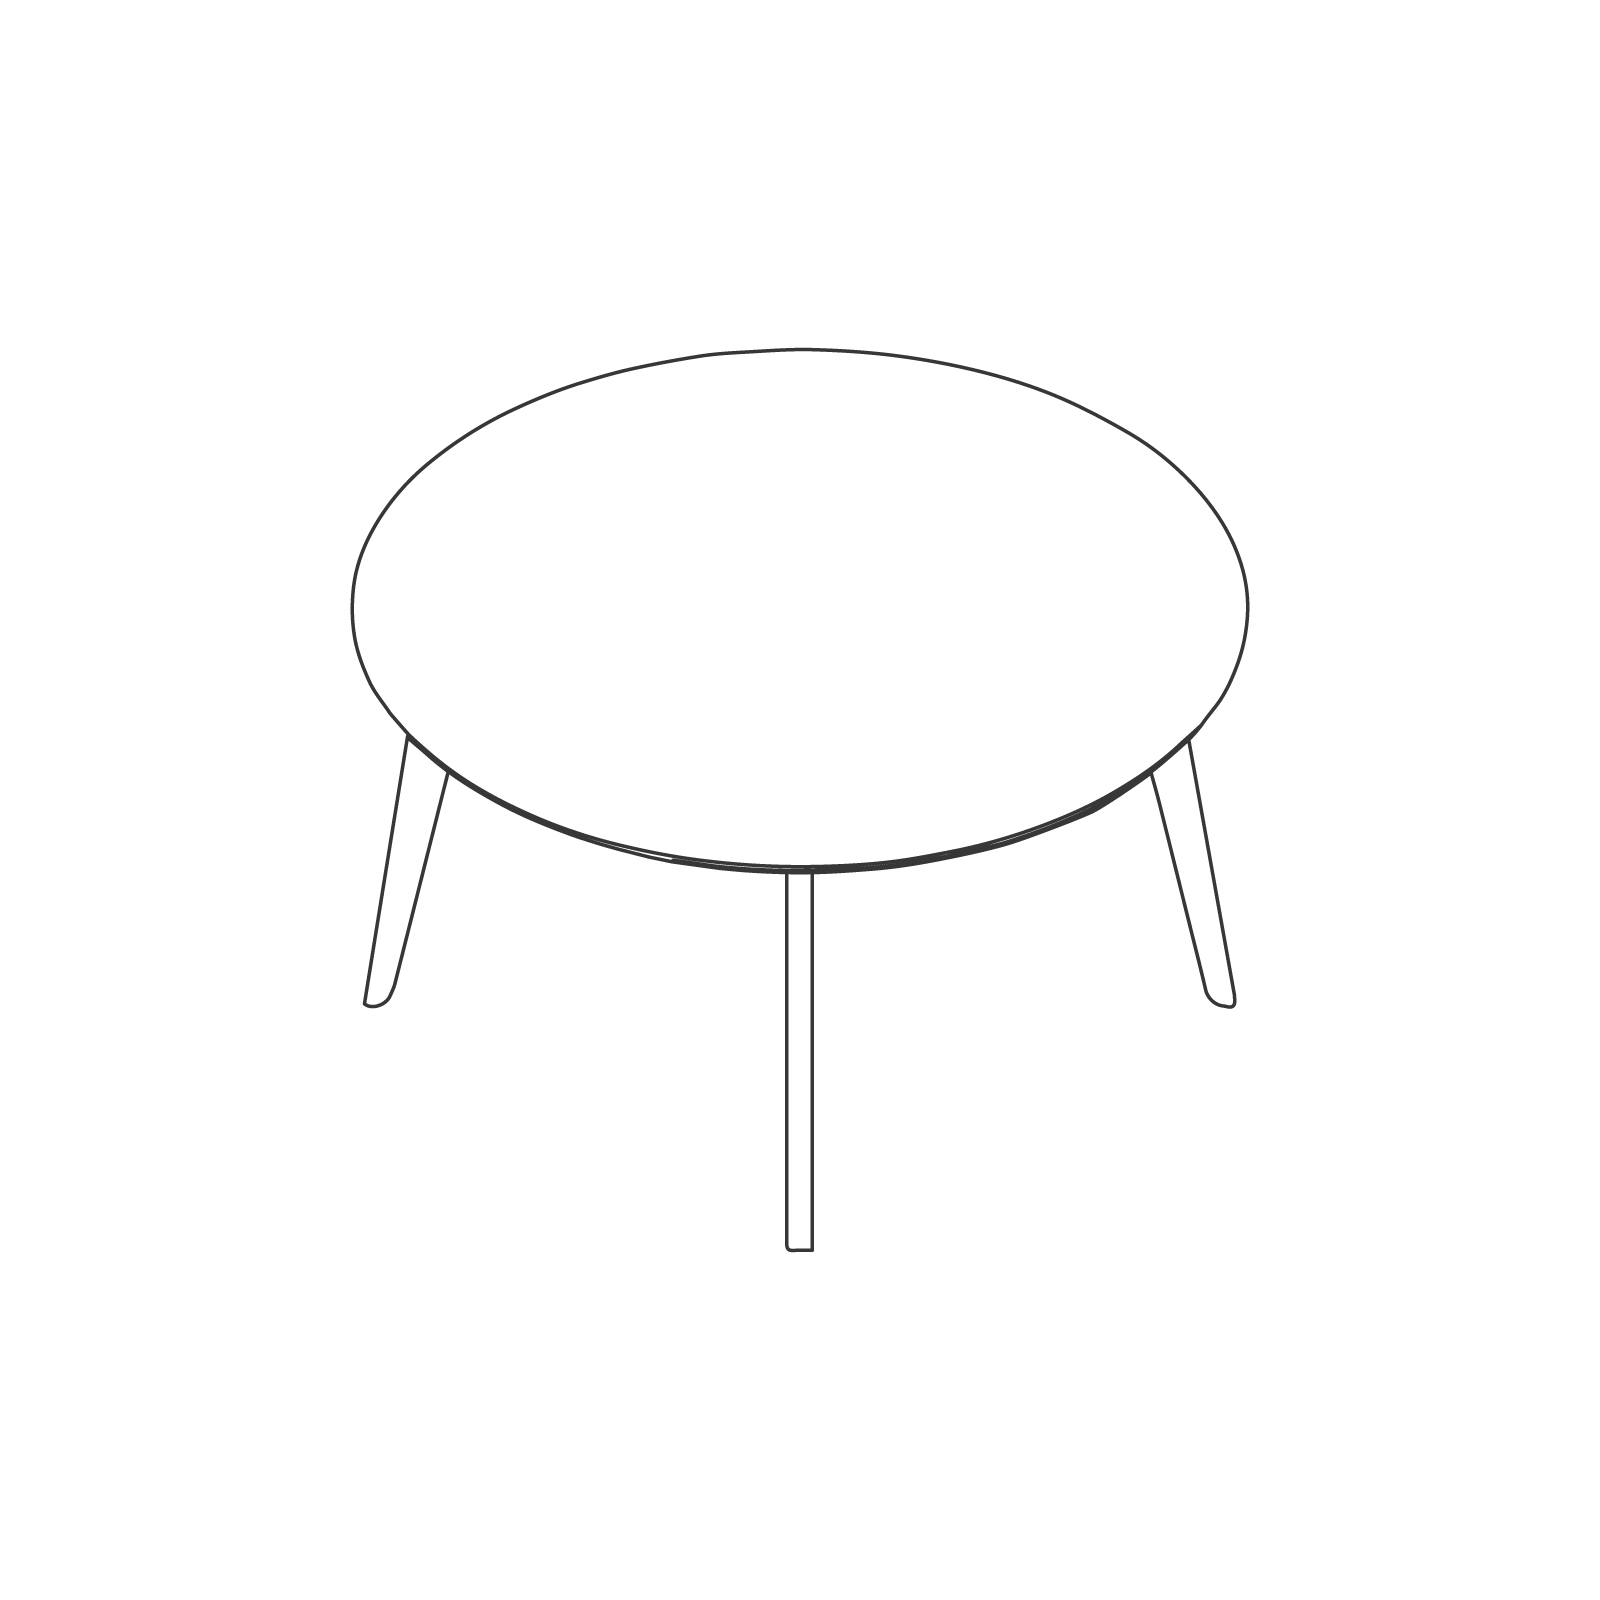 A line drawing of Dalby Conference Table–Round.